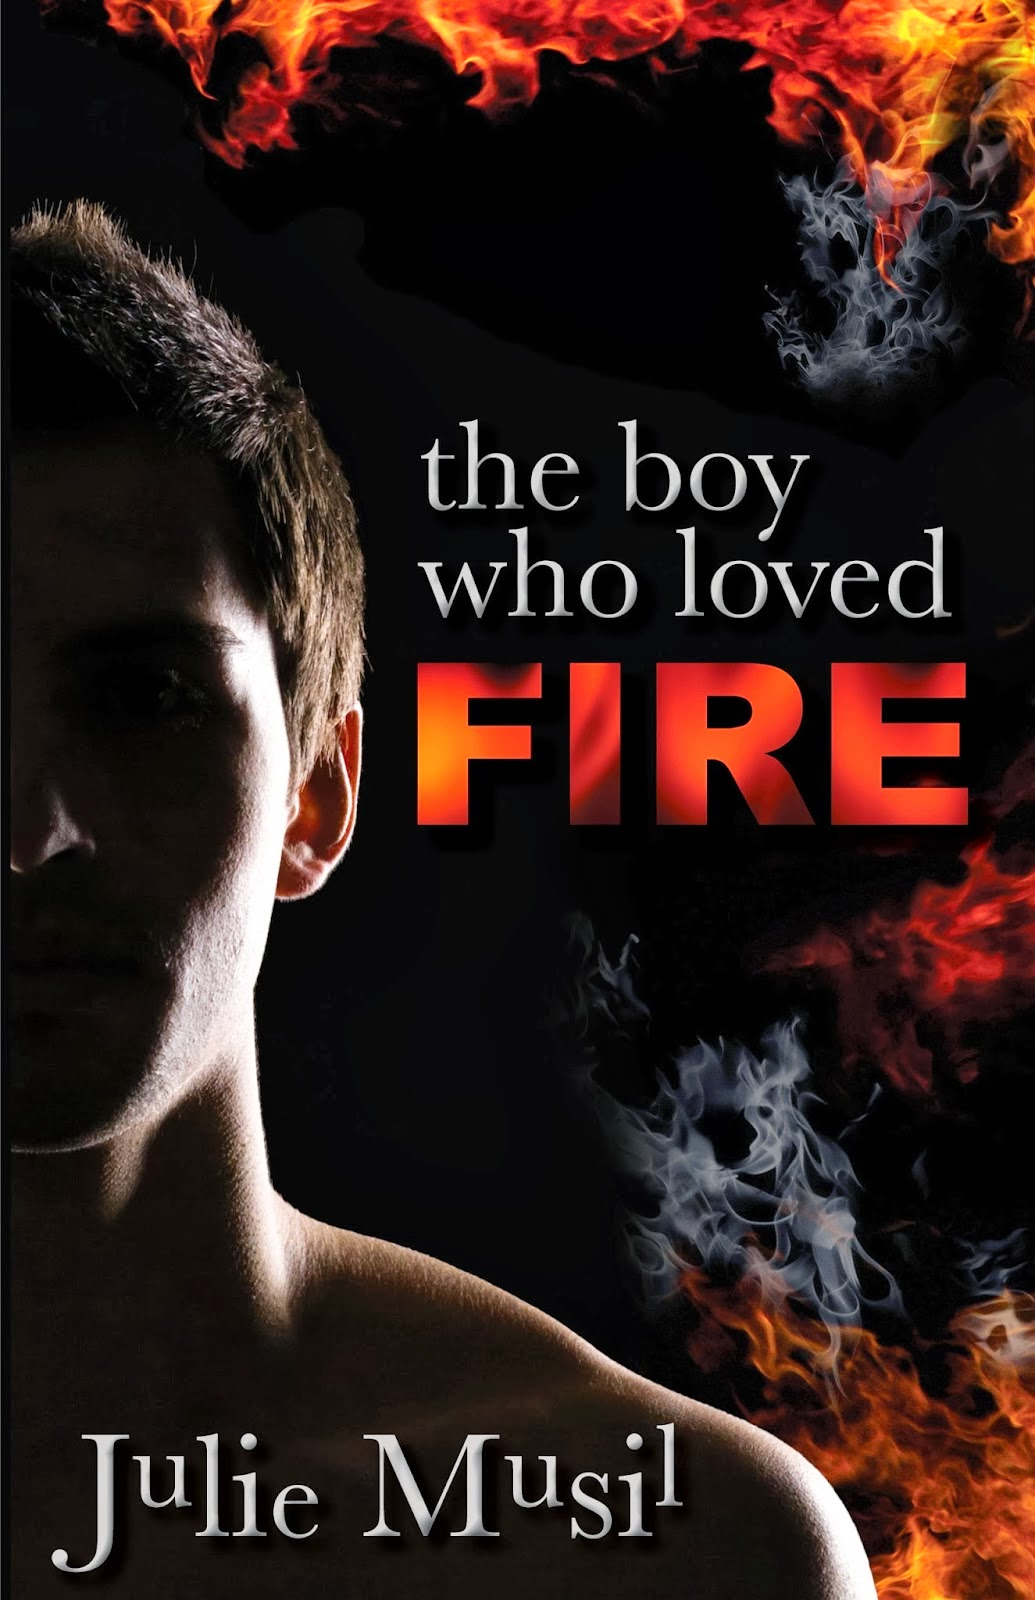 http://www.amazon.com/Boy-Who-Loved-Fire-ebook/dp/B00H9MY16Q/ref=sr_1_2?s=digital-text&ie=UTF8&qid=1407800443&sr=1-2